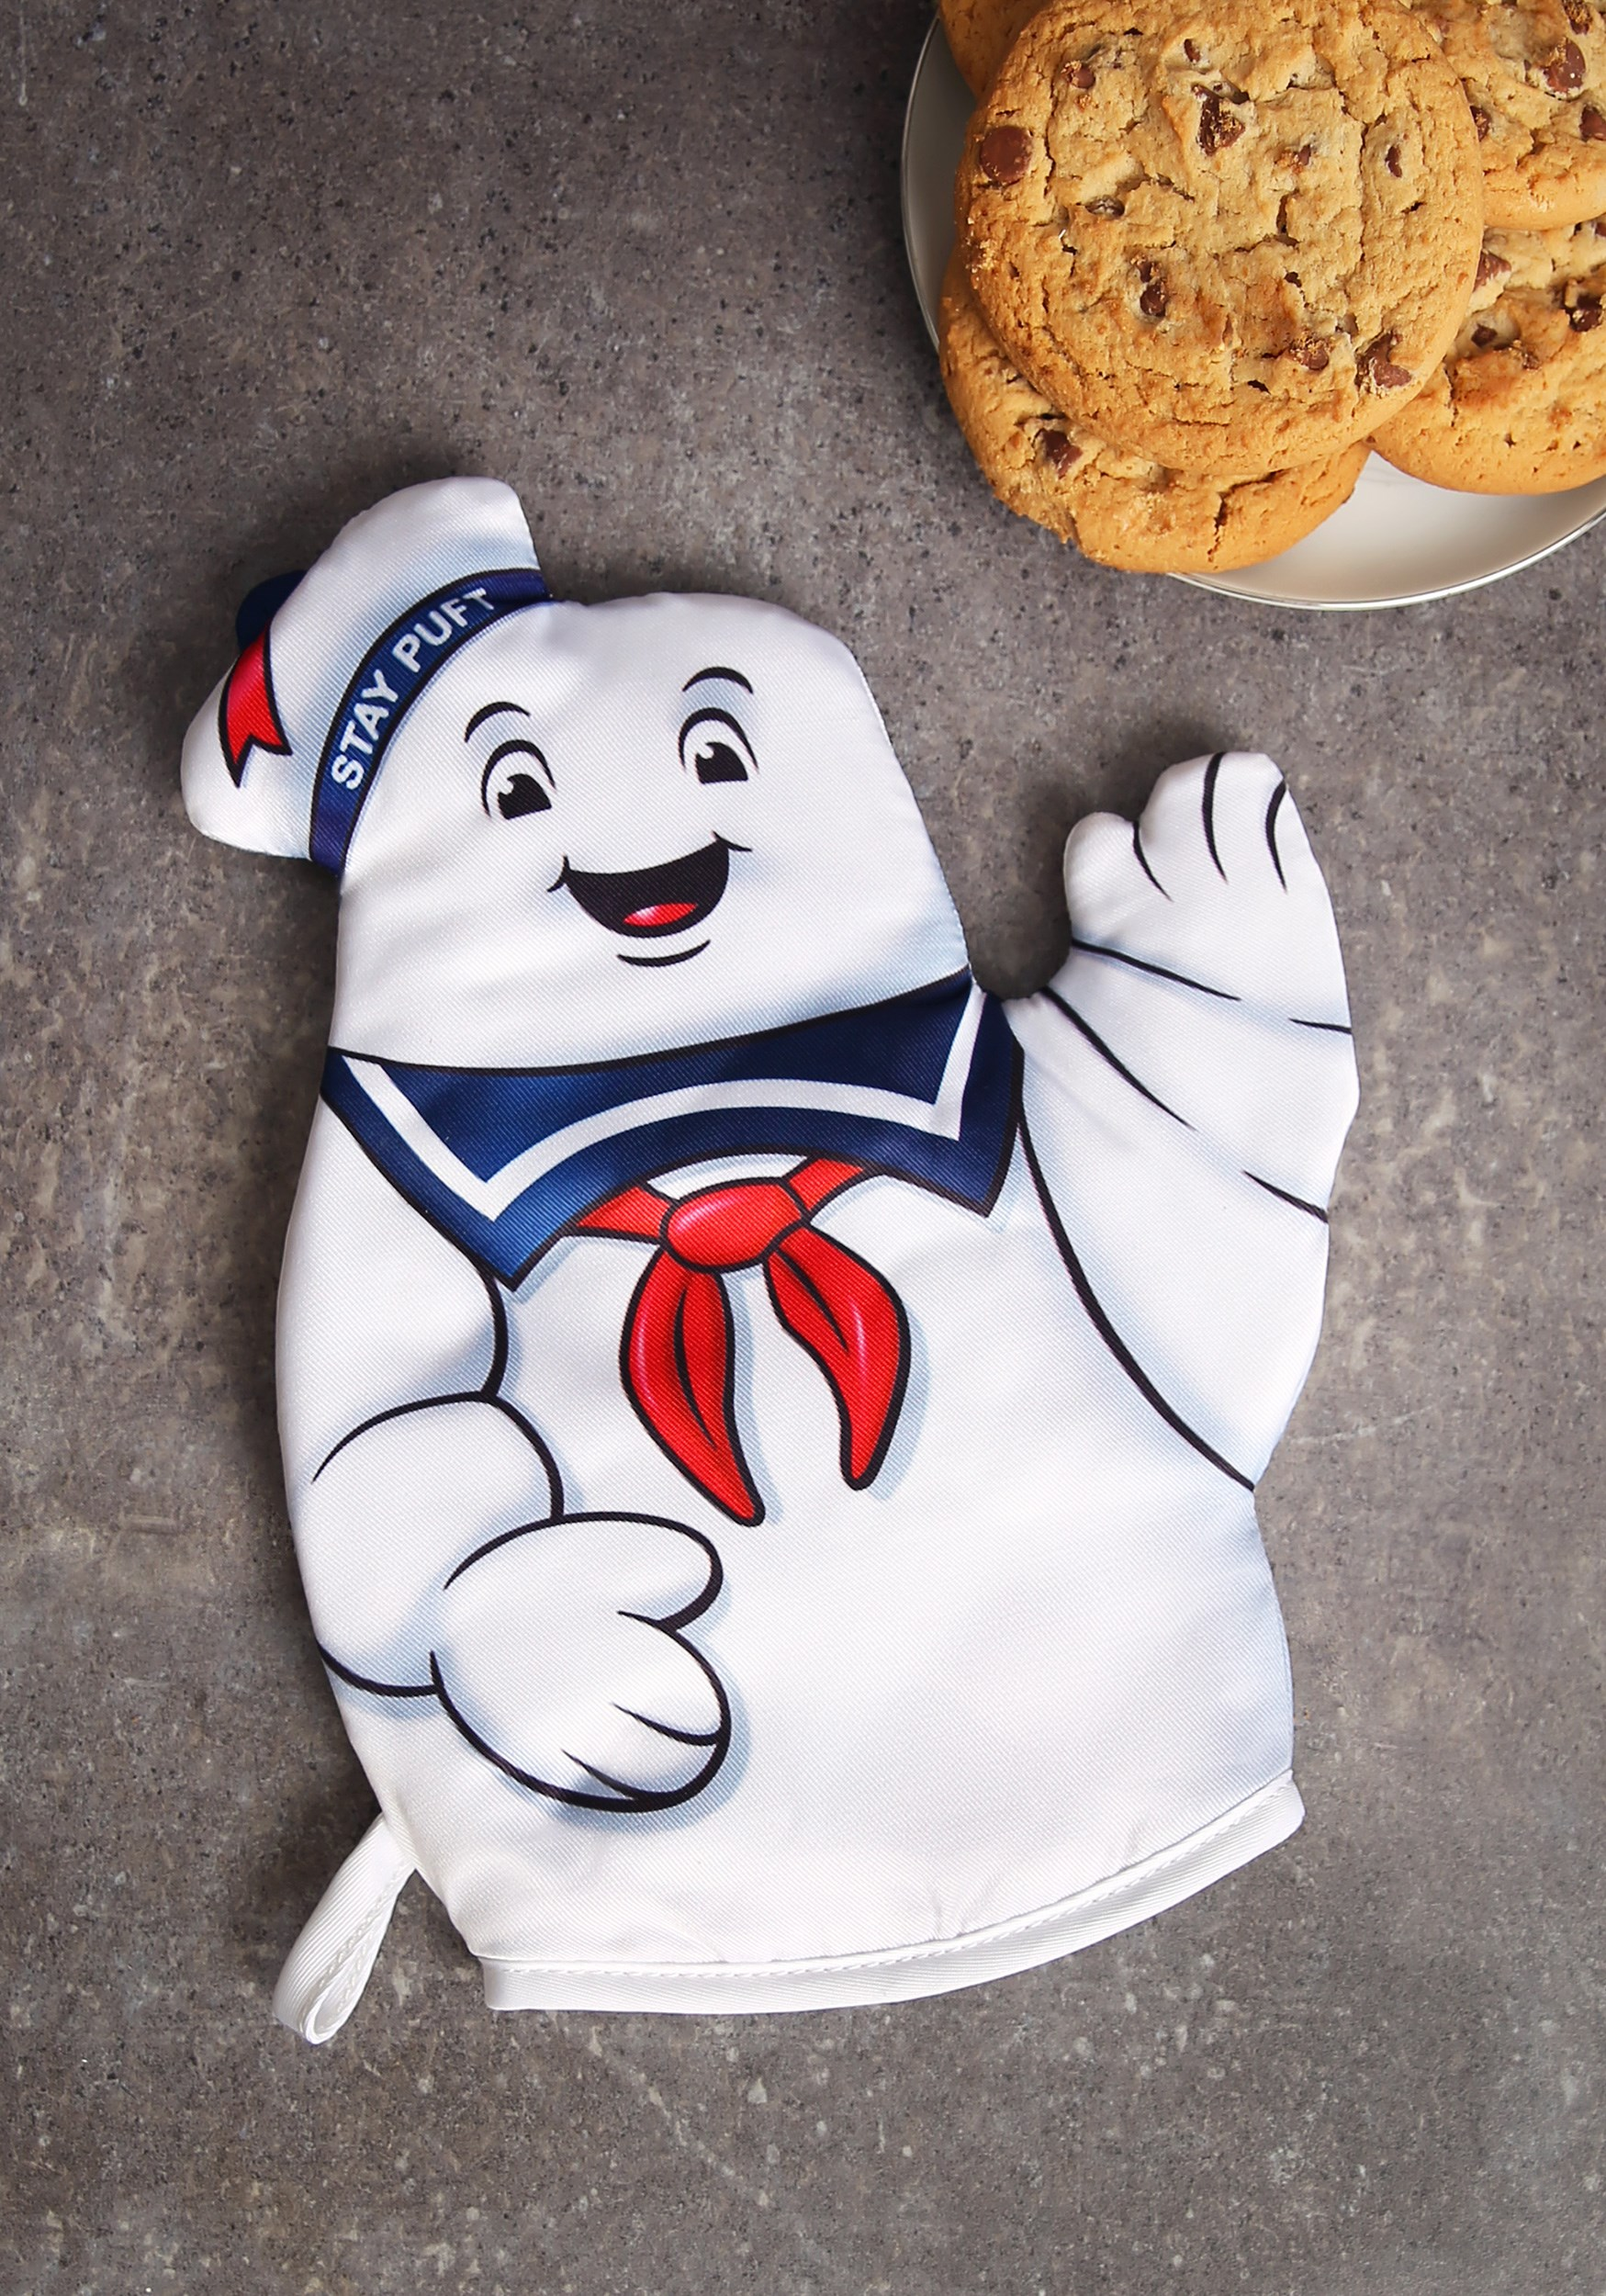 Ghostbusters Stay Puft Marshmallow Oven Mitt EEDDCL5405